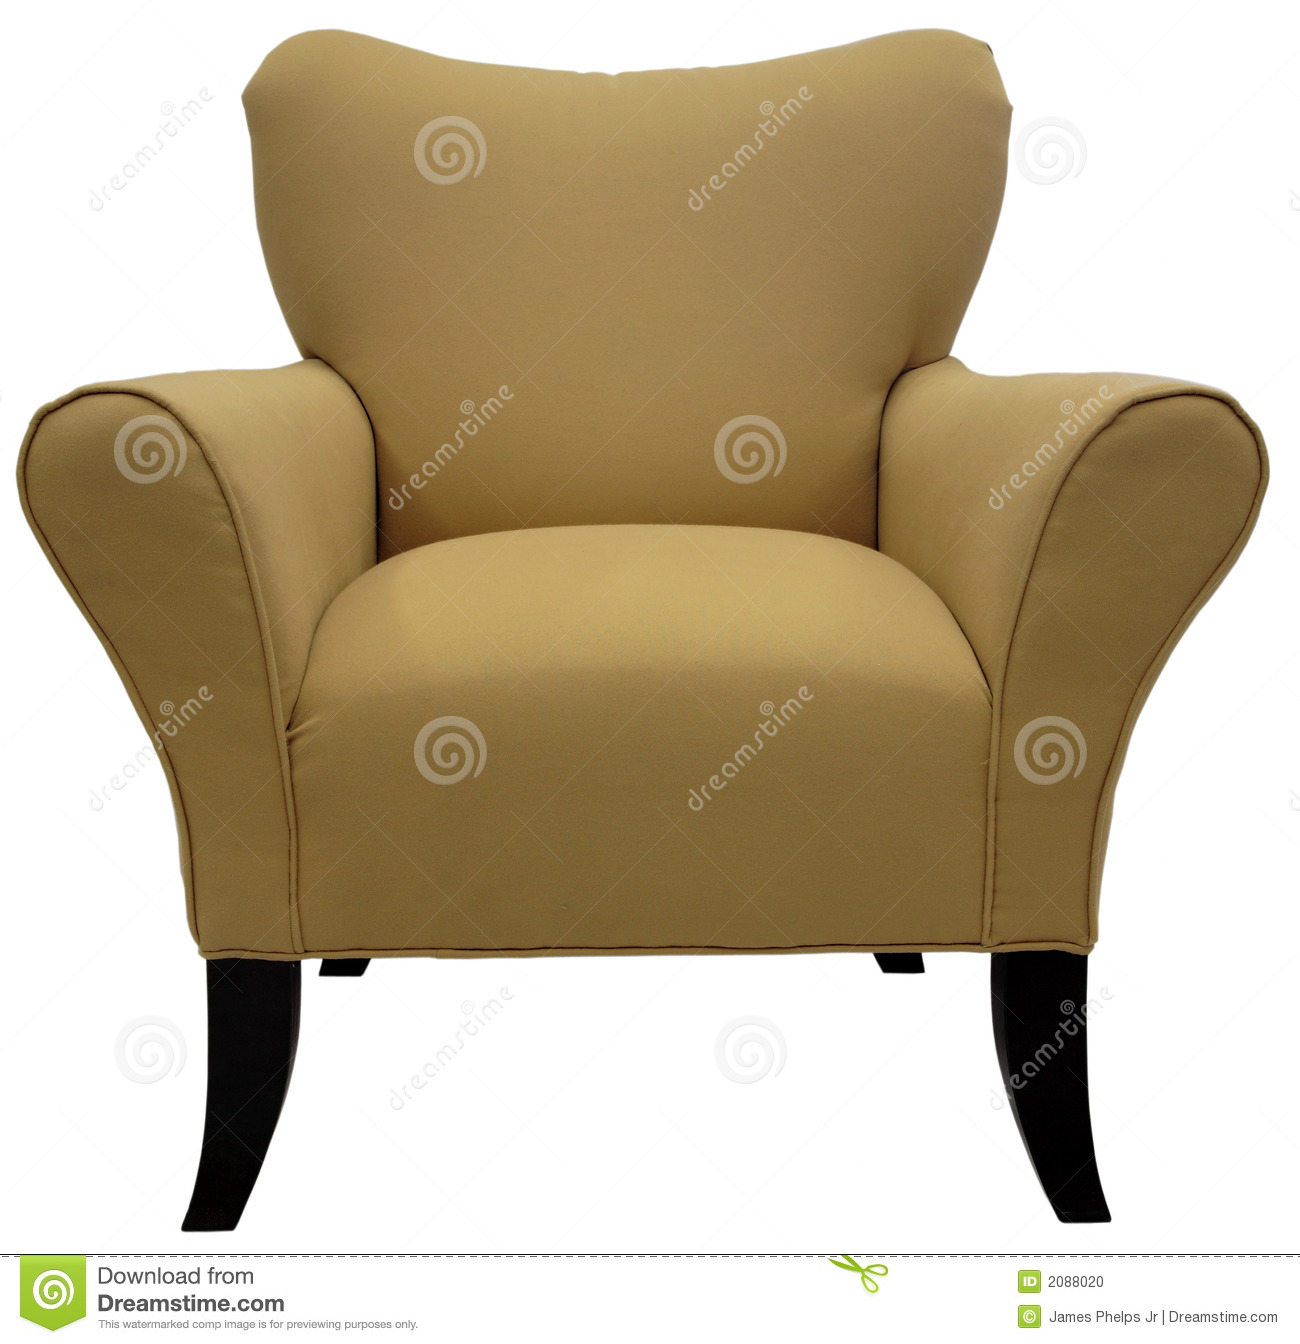 contemporary accent chair stock photo  image  - contemporary accent chair stock photo